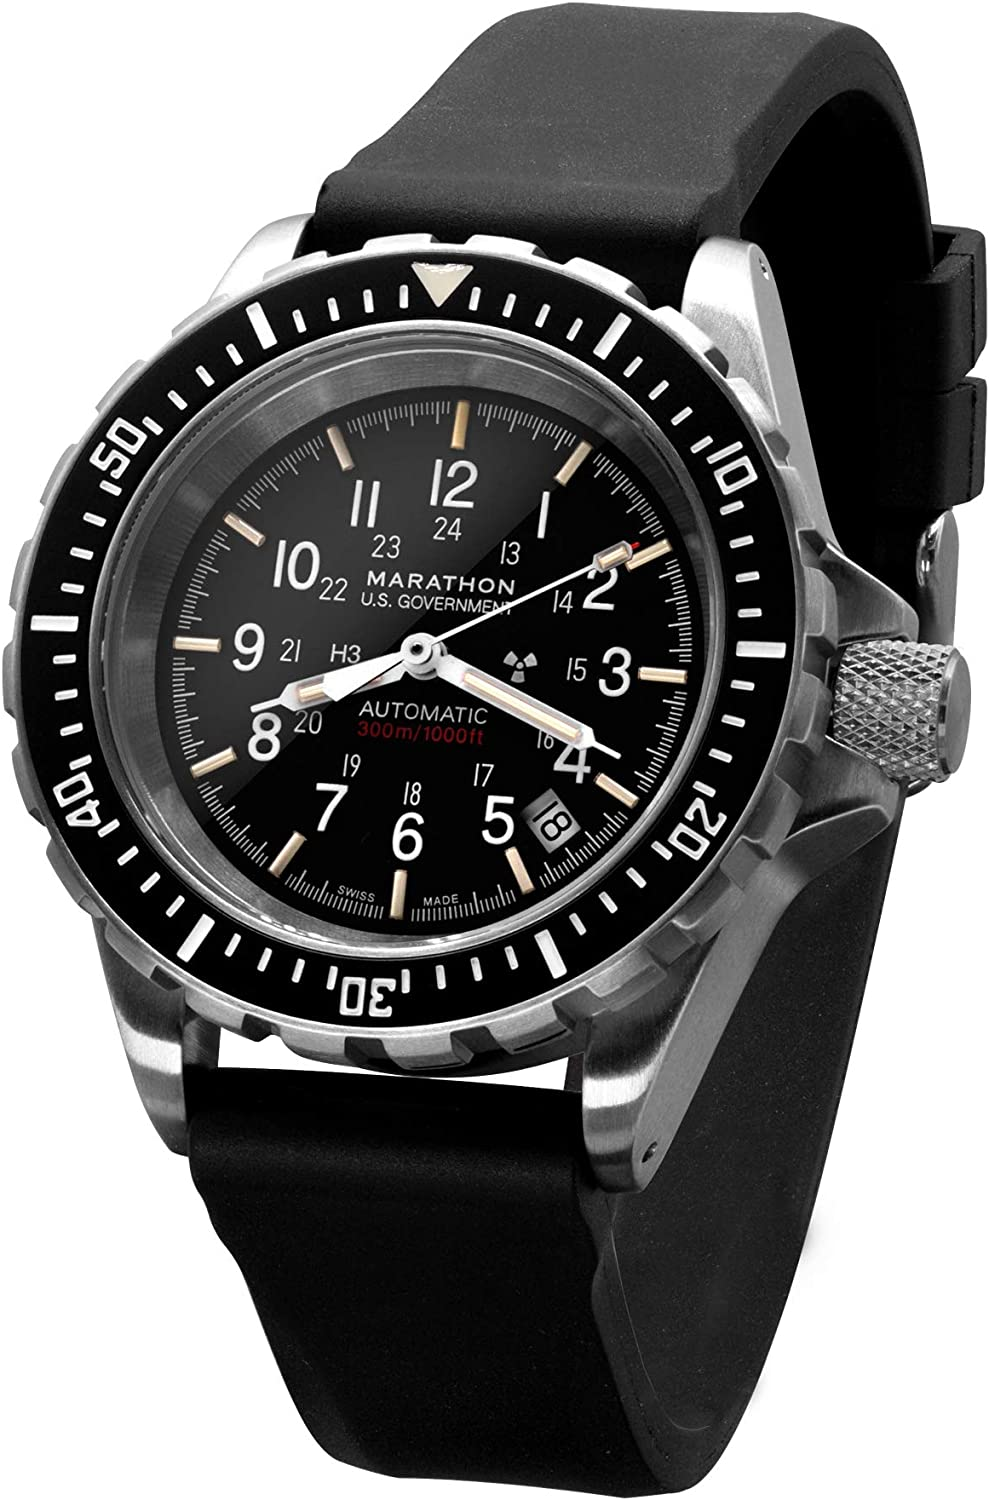 MARATHON WW194006 GSAR Swiss Made Military Issue Diver's Automatic Watch with Tritium